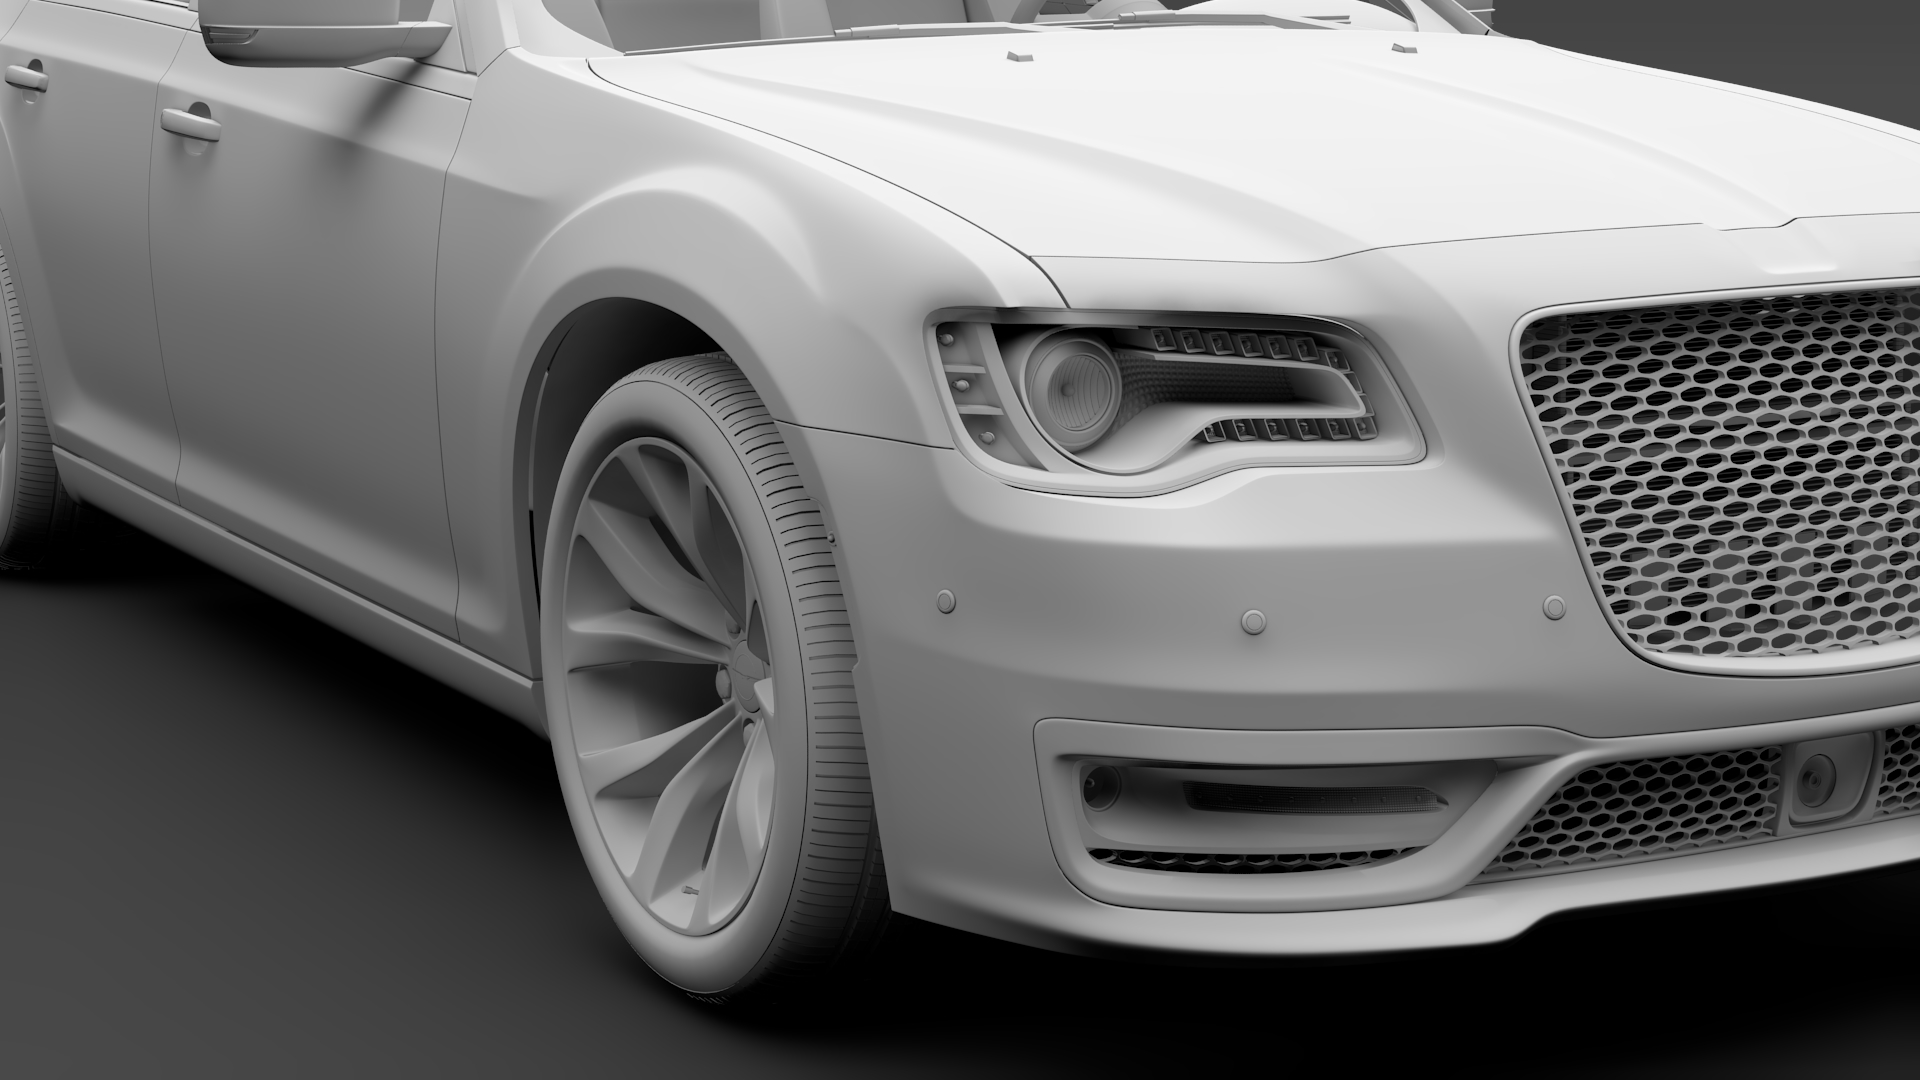 chrysler 300 srt lx2 2018 3d model 3ds max fbx c4d lwo ma mb hrc xsi obj 286108